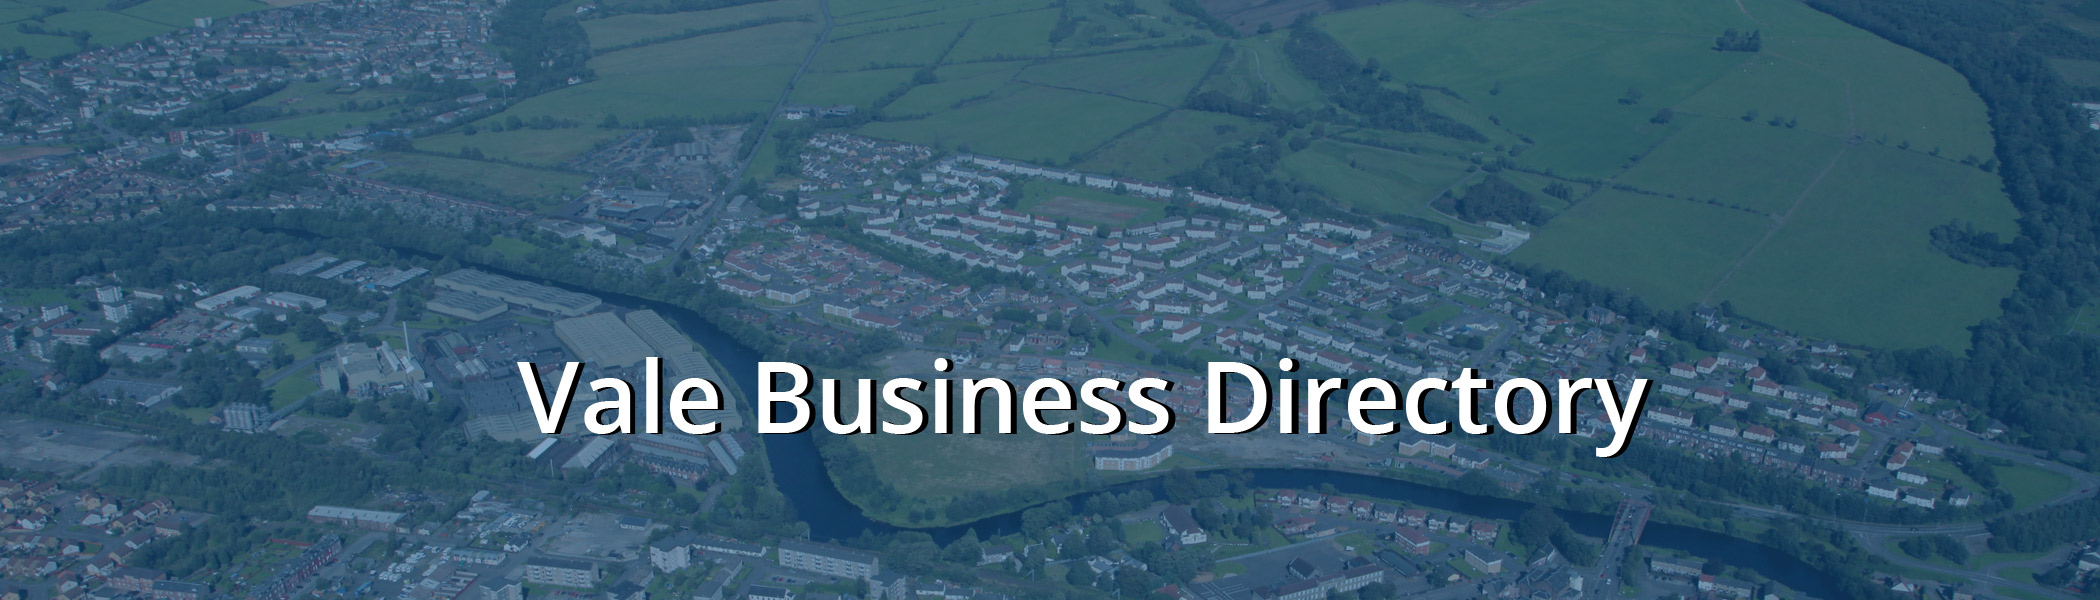 Vale Business Directory